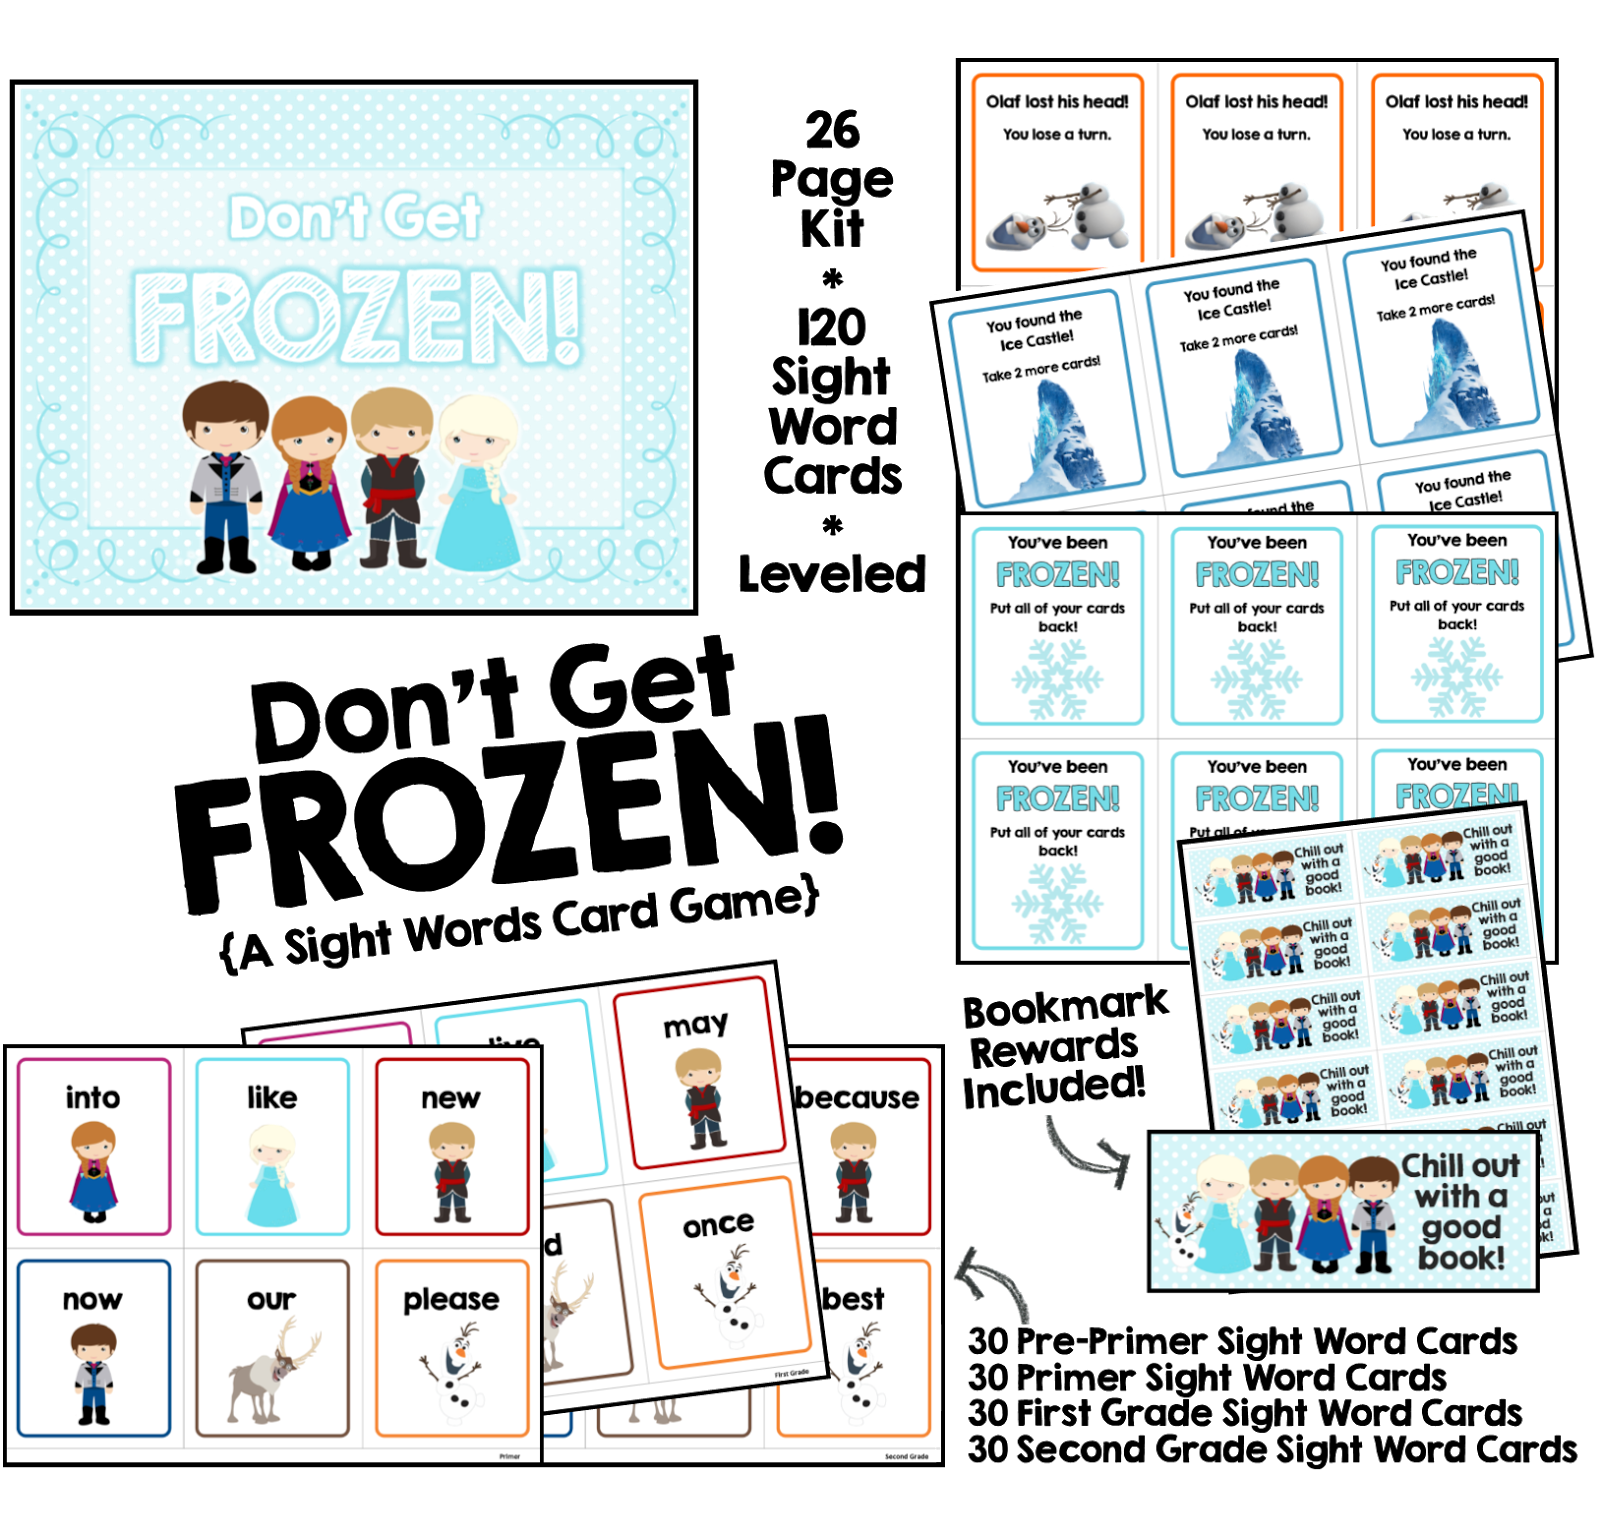 card game essay Free essay: most children grow up playing card games it starts out with card games like go fish and other matching games and turns into strategic trading.